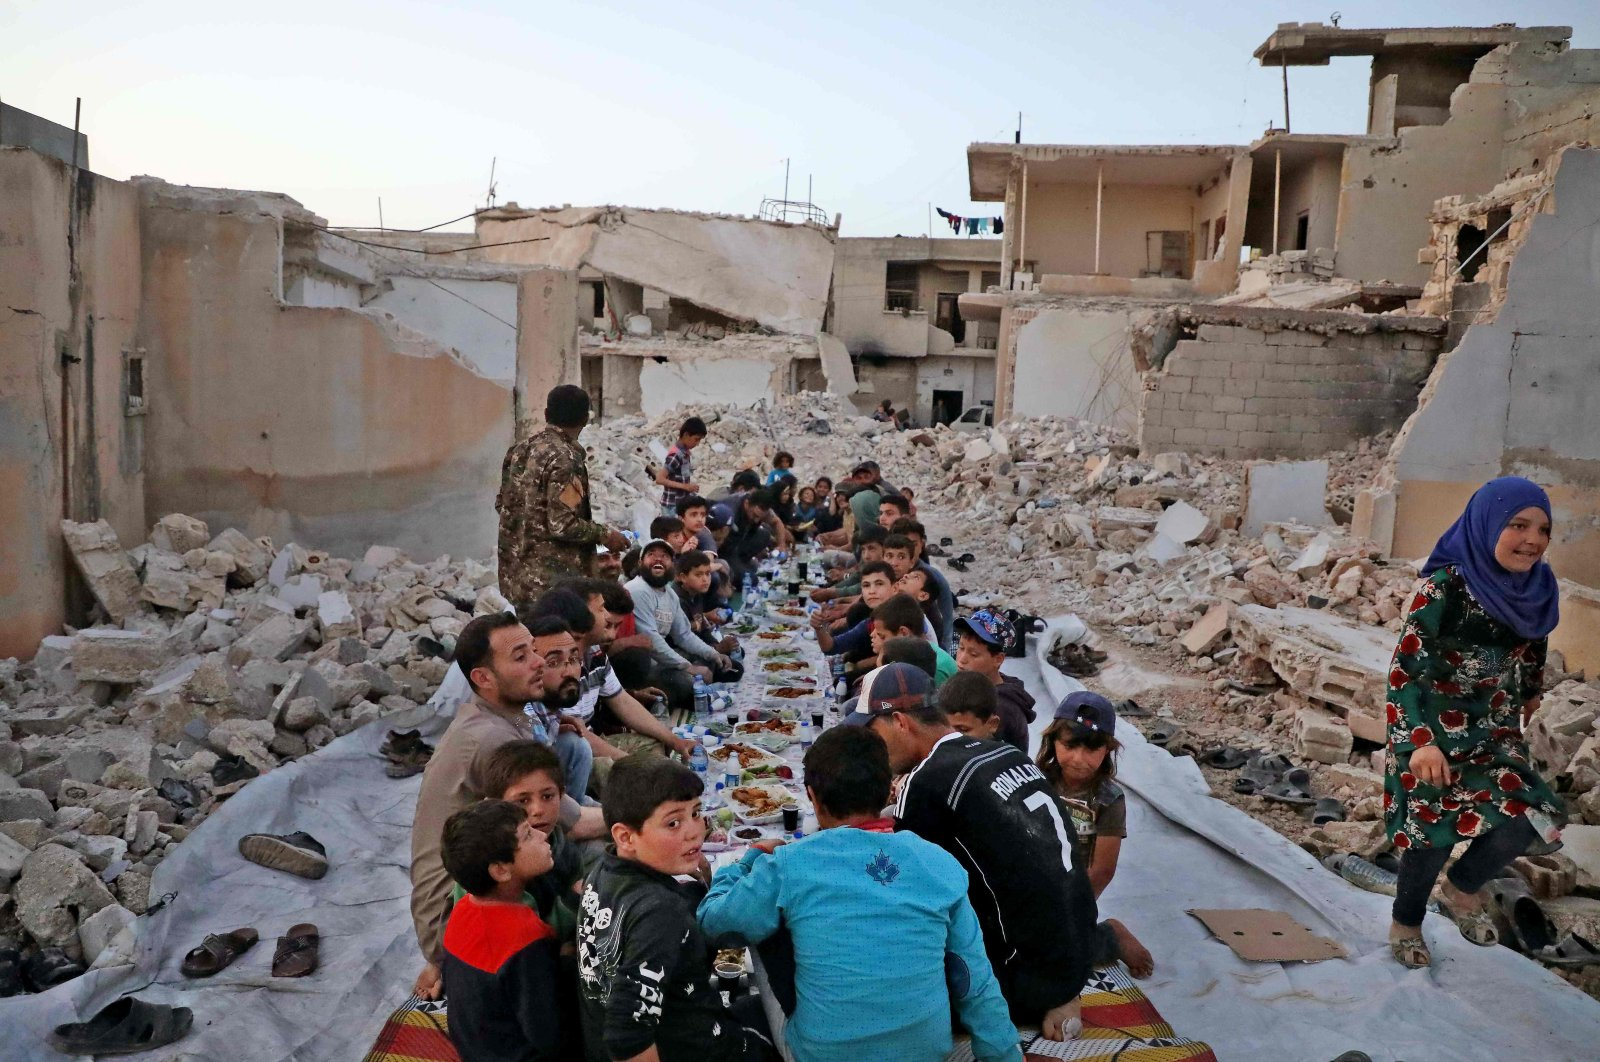 """This picture taken on May 12, 2020 in the village of Kafr Nuran in the western countryside of Syria's northern Aleppo province shows men and children seated together in the midst of ruins before starting the """"iftar"""" fast-breaking meal consumed by Muslims at sunset during the holy fasting month of Ramadan. (AFP Photo)"""